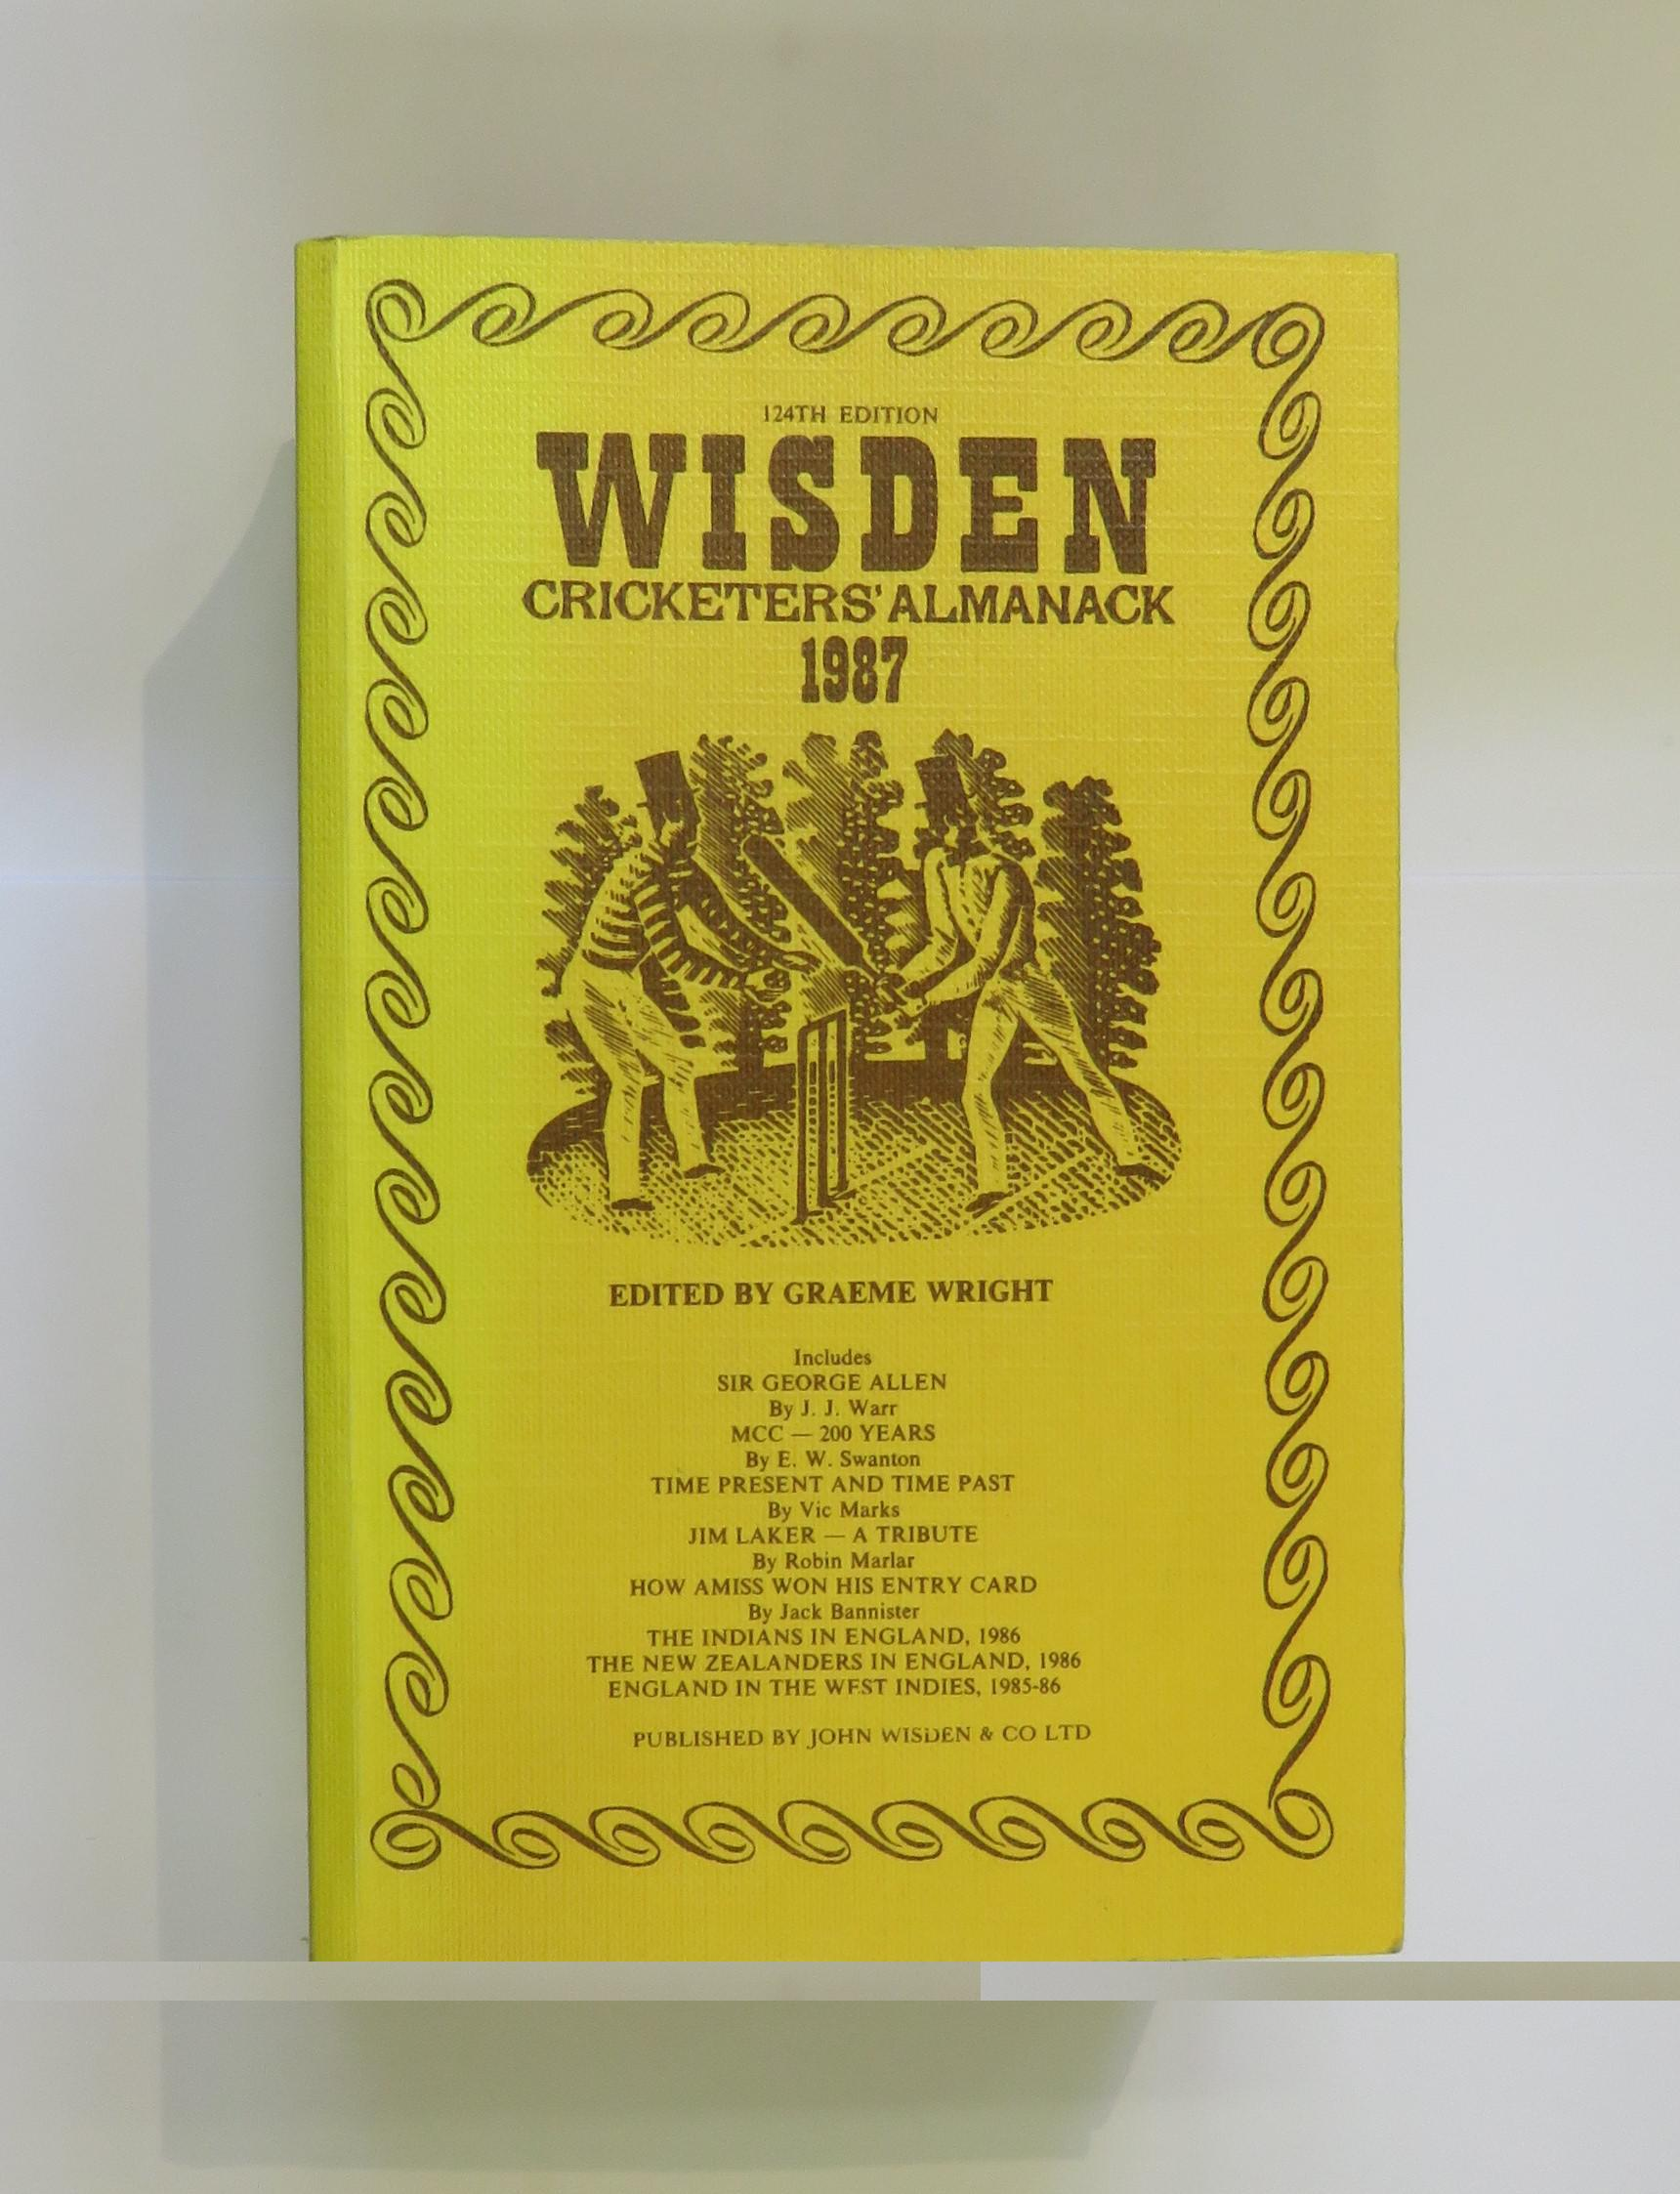 Wisden Cricketers' Almanack 1987